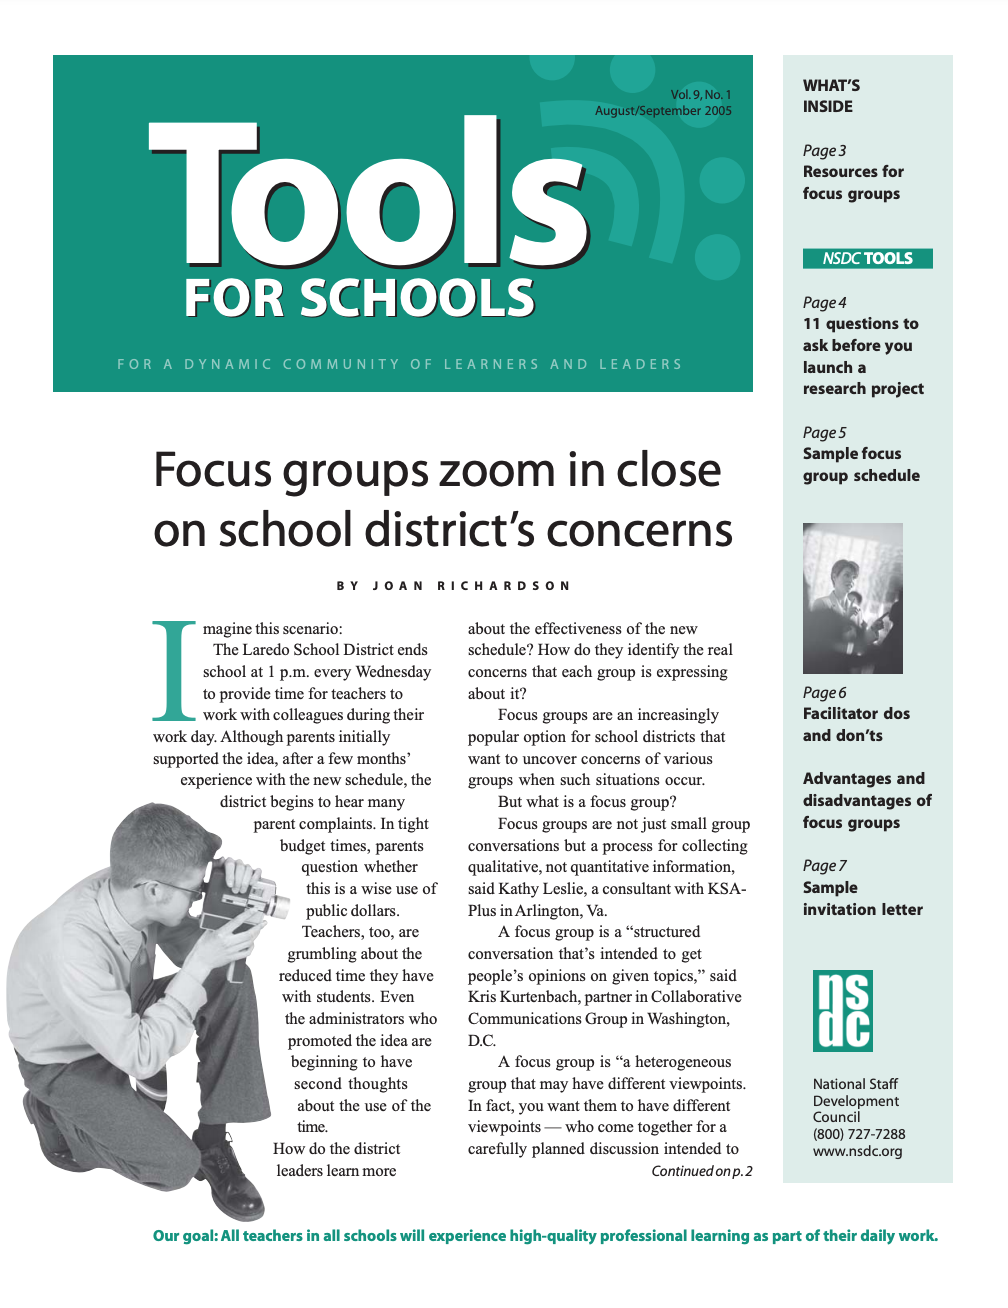 tools-for-schools-august-september-2005-vol-9-no-1